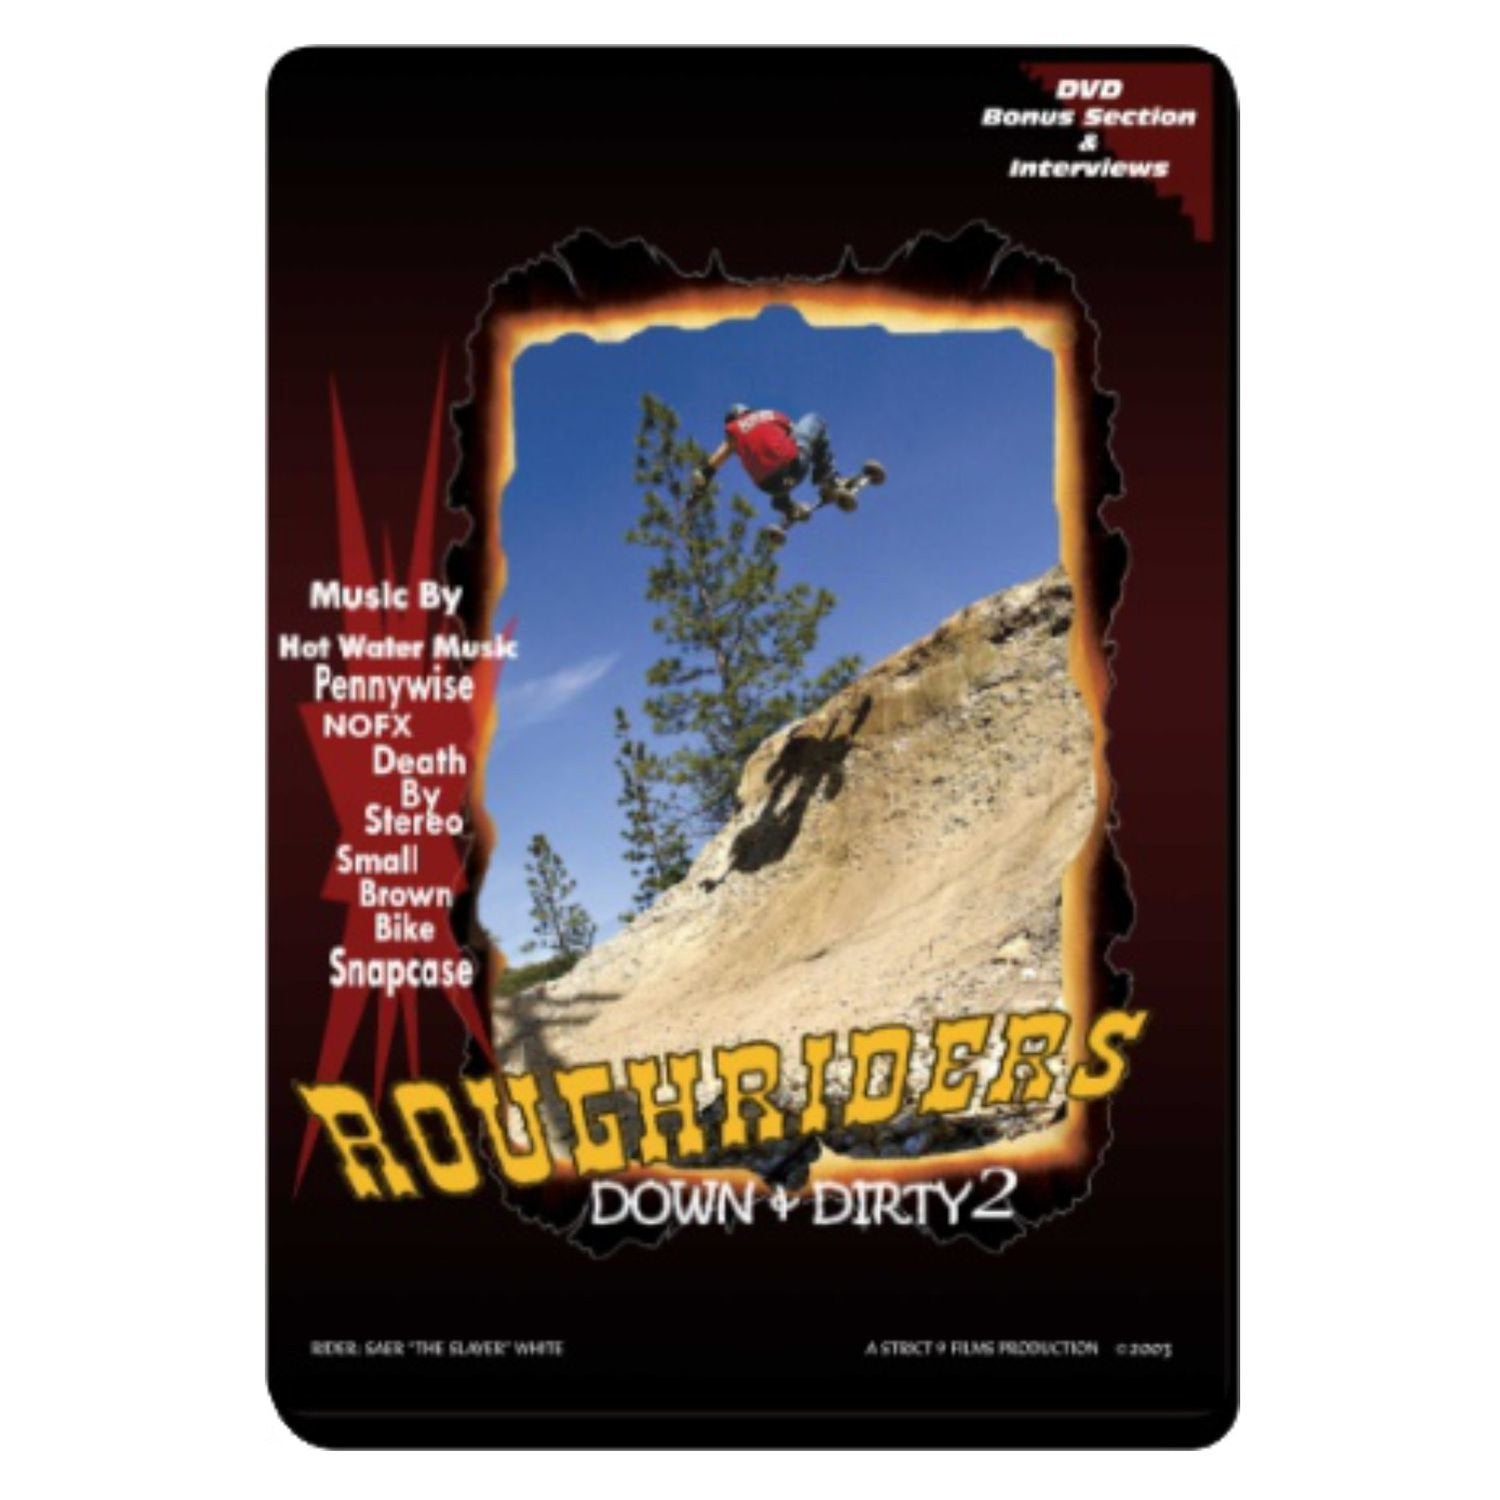 Image of Down and Dirty II - DVD - Mountainboarding